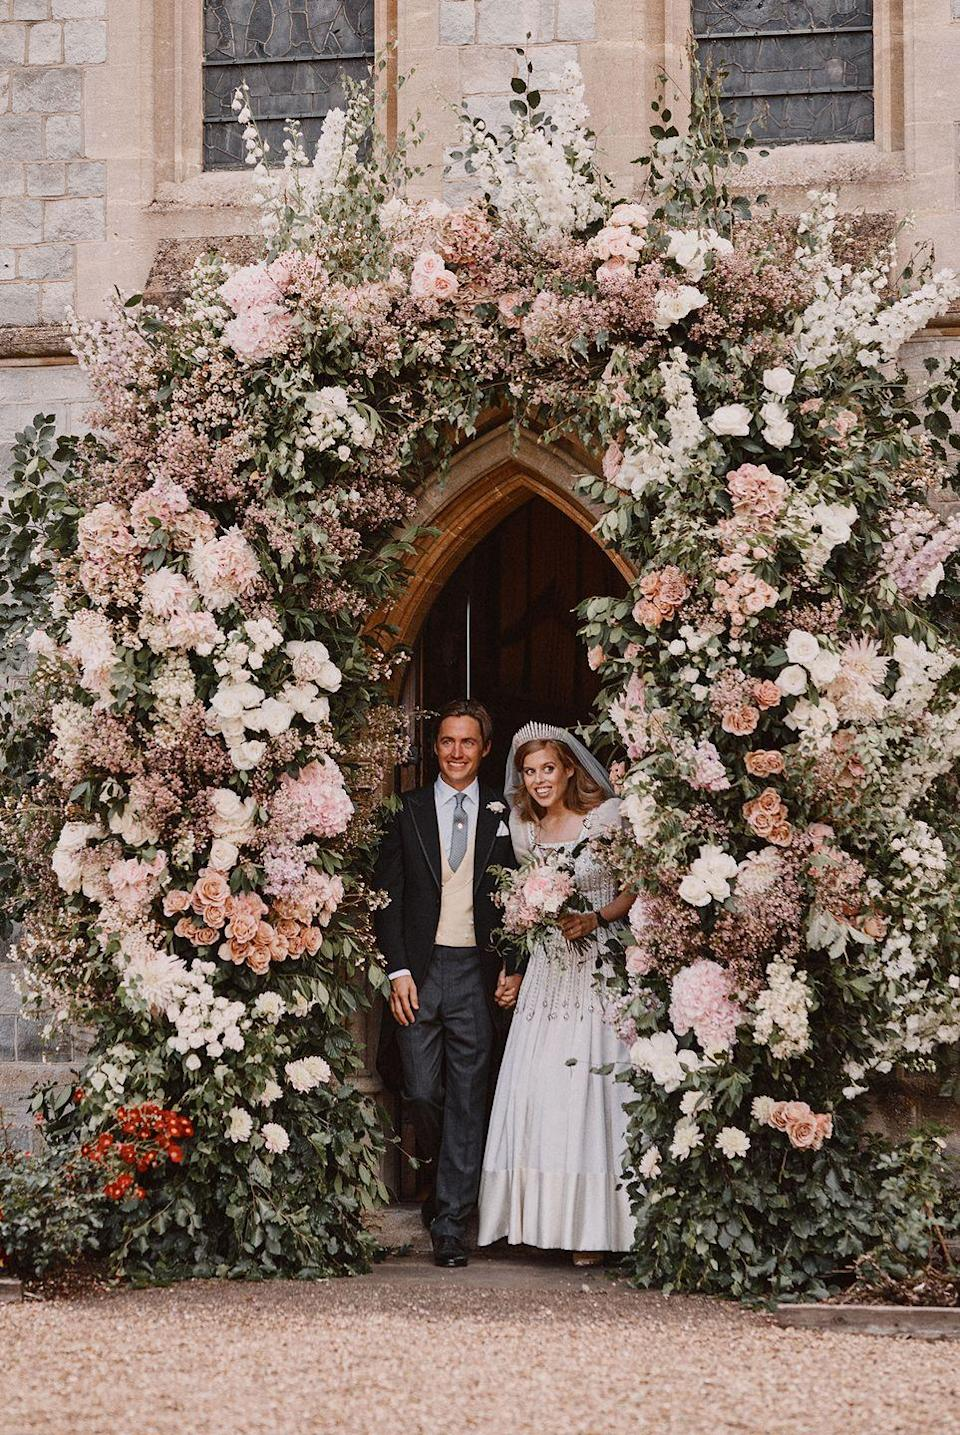 """<p>Here, another portrait of the happy couple as they exited the church.</p><p><a href=""""https://www.townandcountrymag.com/society/tradition/a33350041/princess-beatrice-edoardo-mapelli-mozzi-wedding-photos/"""" rel=""""nofollow noopener"""" target=""""_blank"""" data-ylk=""""slk:See all the photos from their intimate wedding ceremony here."""" class=""""link rapid-noclick-resp"""">See all the photos from their intimate wedding ceremony here. </a></p>"""